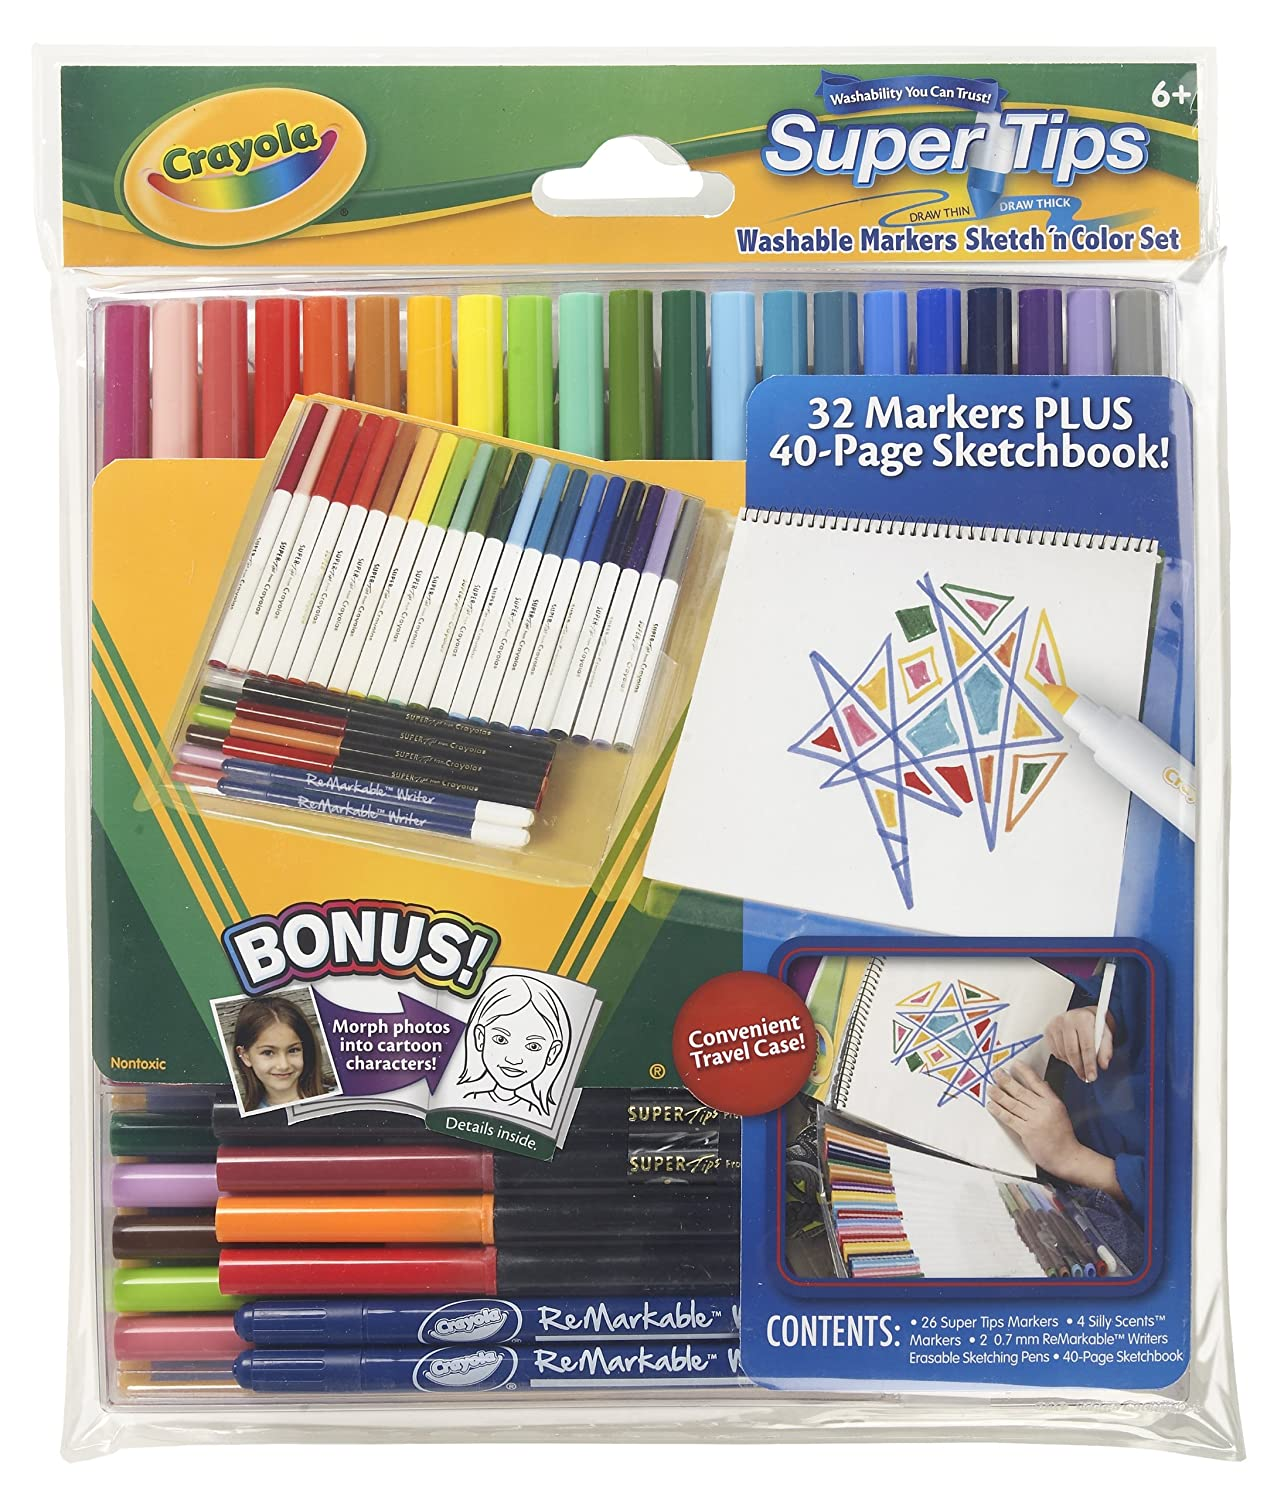 Amazoncom Crayola Supertips Marker Sketch N Color Set Toys Games